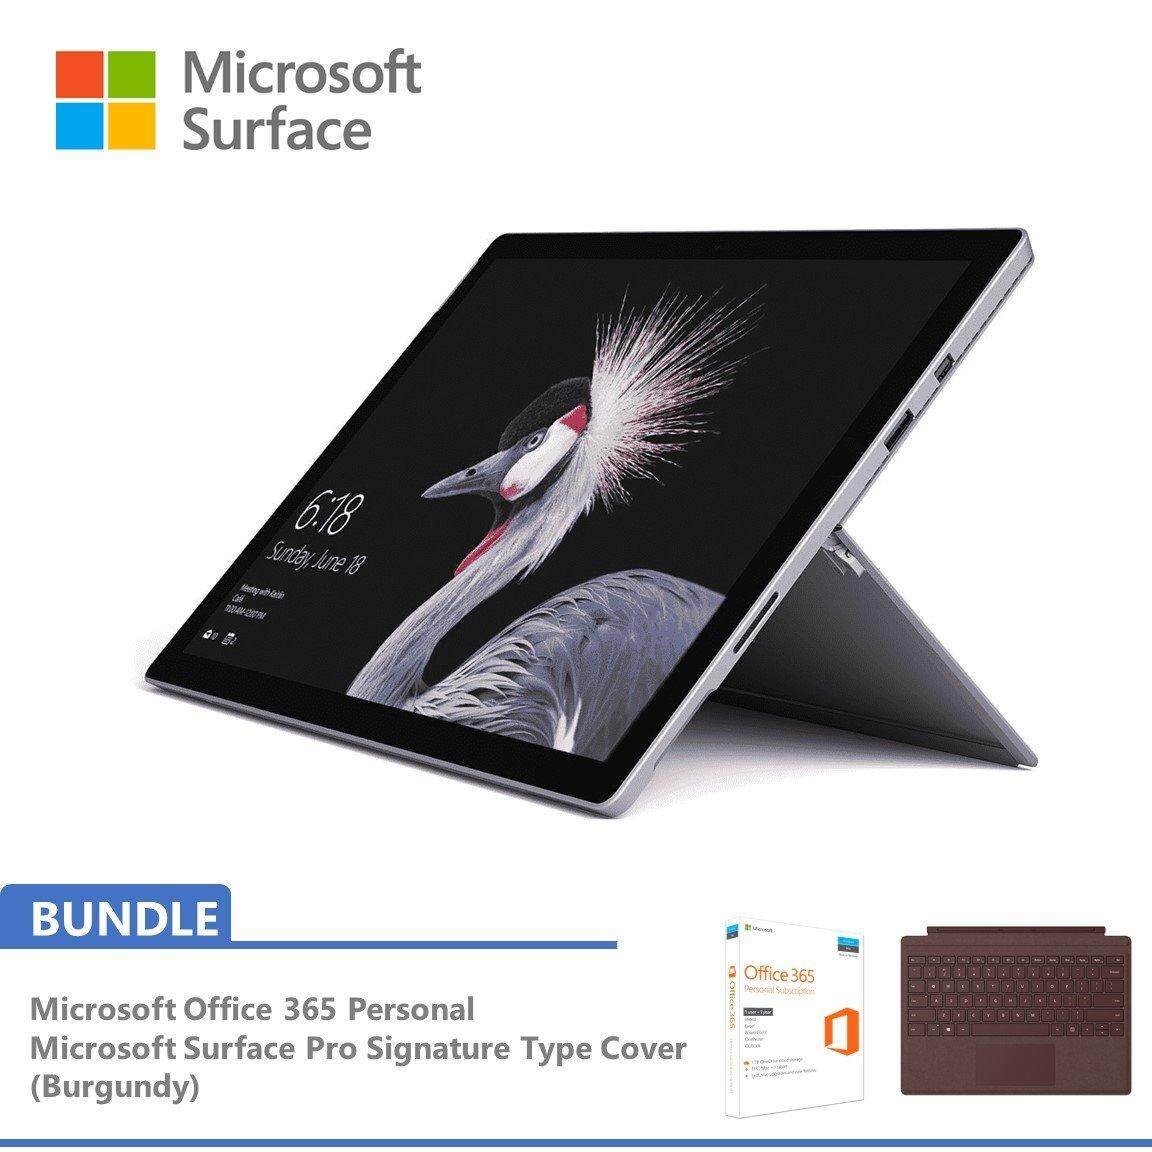 Microsoft New Surface Pro i5 256GB SSD / 8GB RAM Bundle with Signature Pro Type Cover Burgundy + FREE Office 365 Personal Malaysia